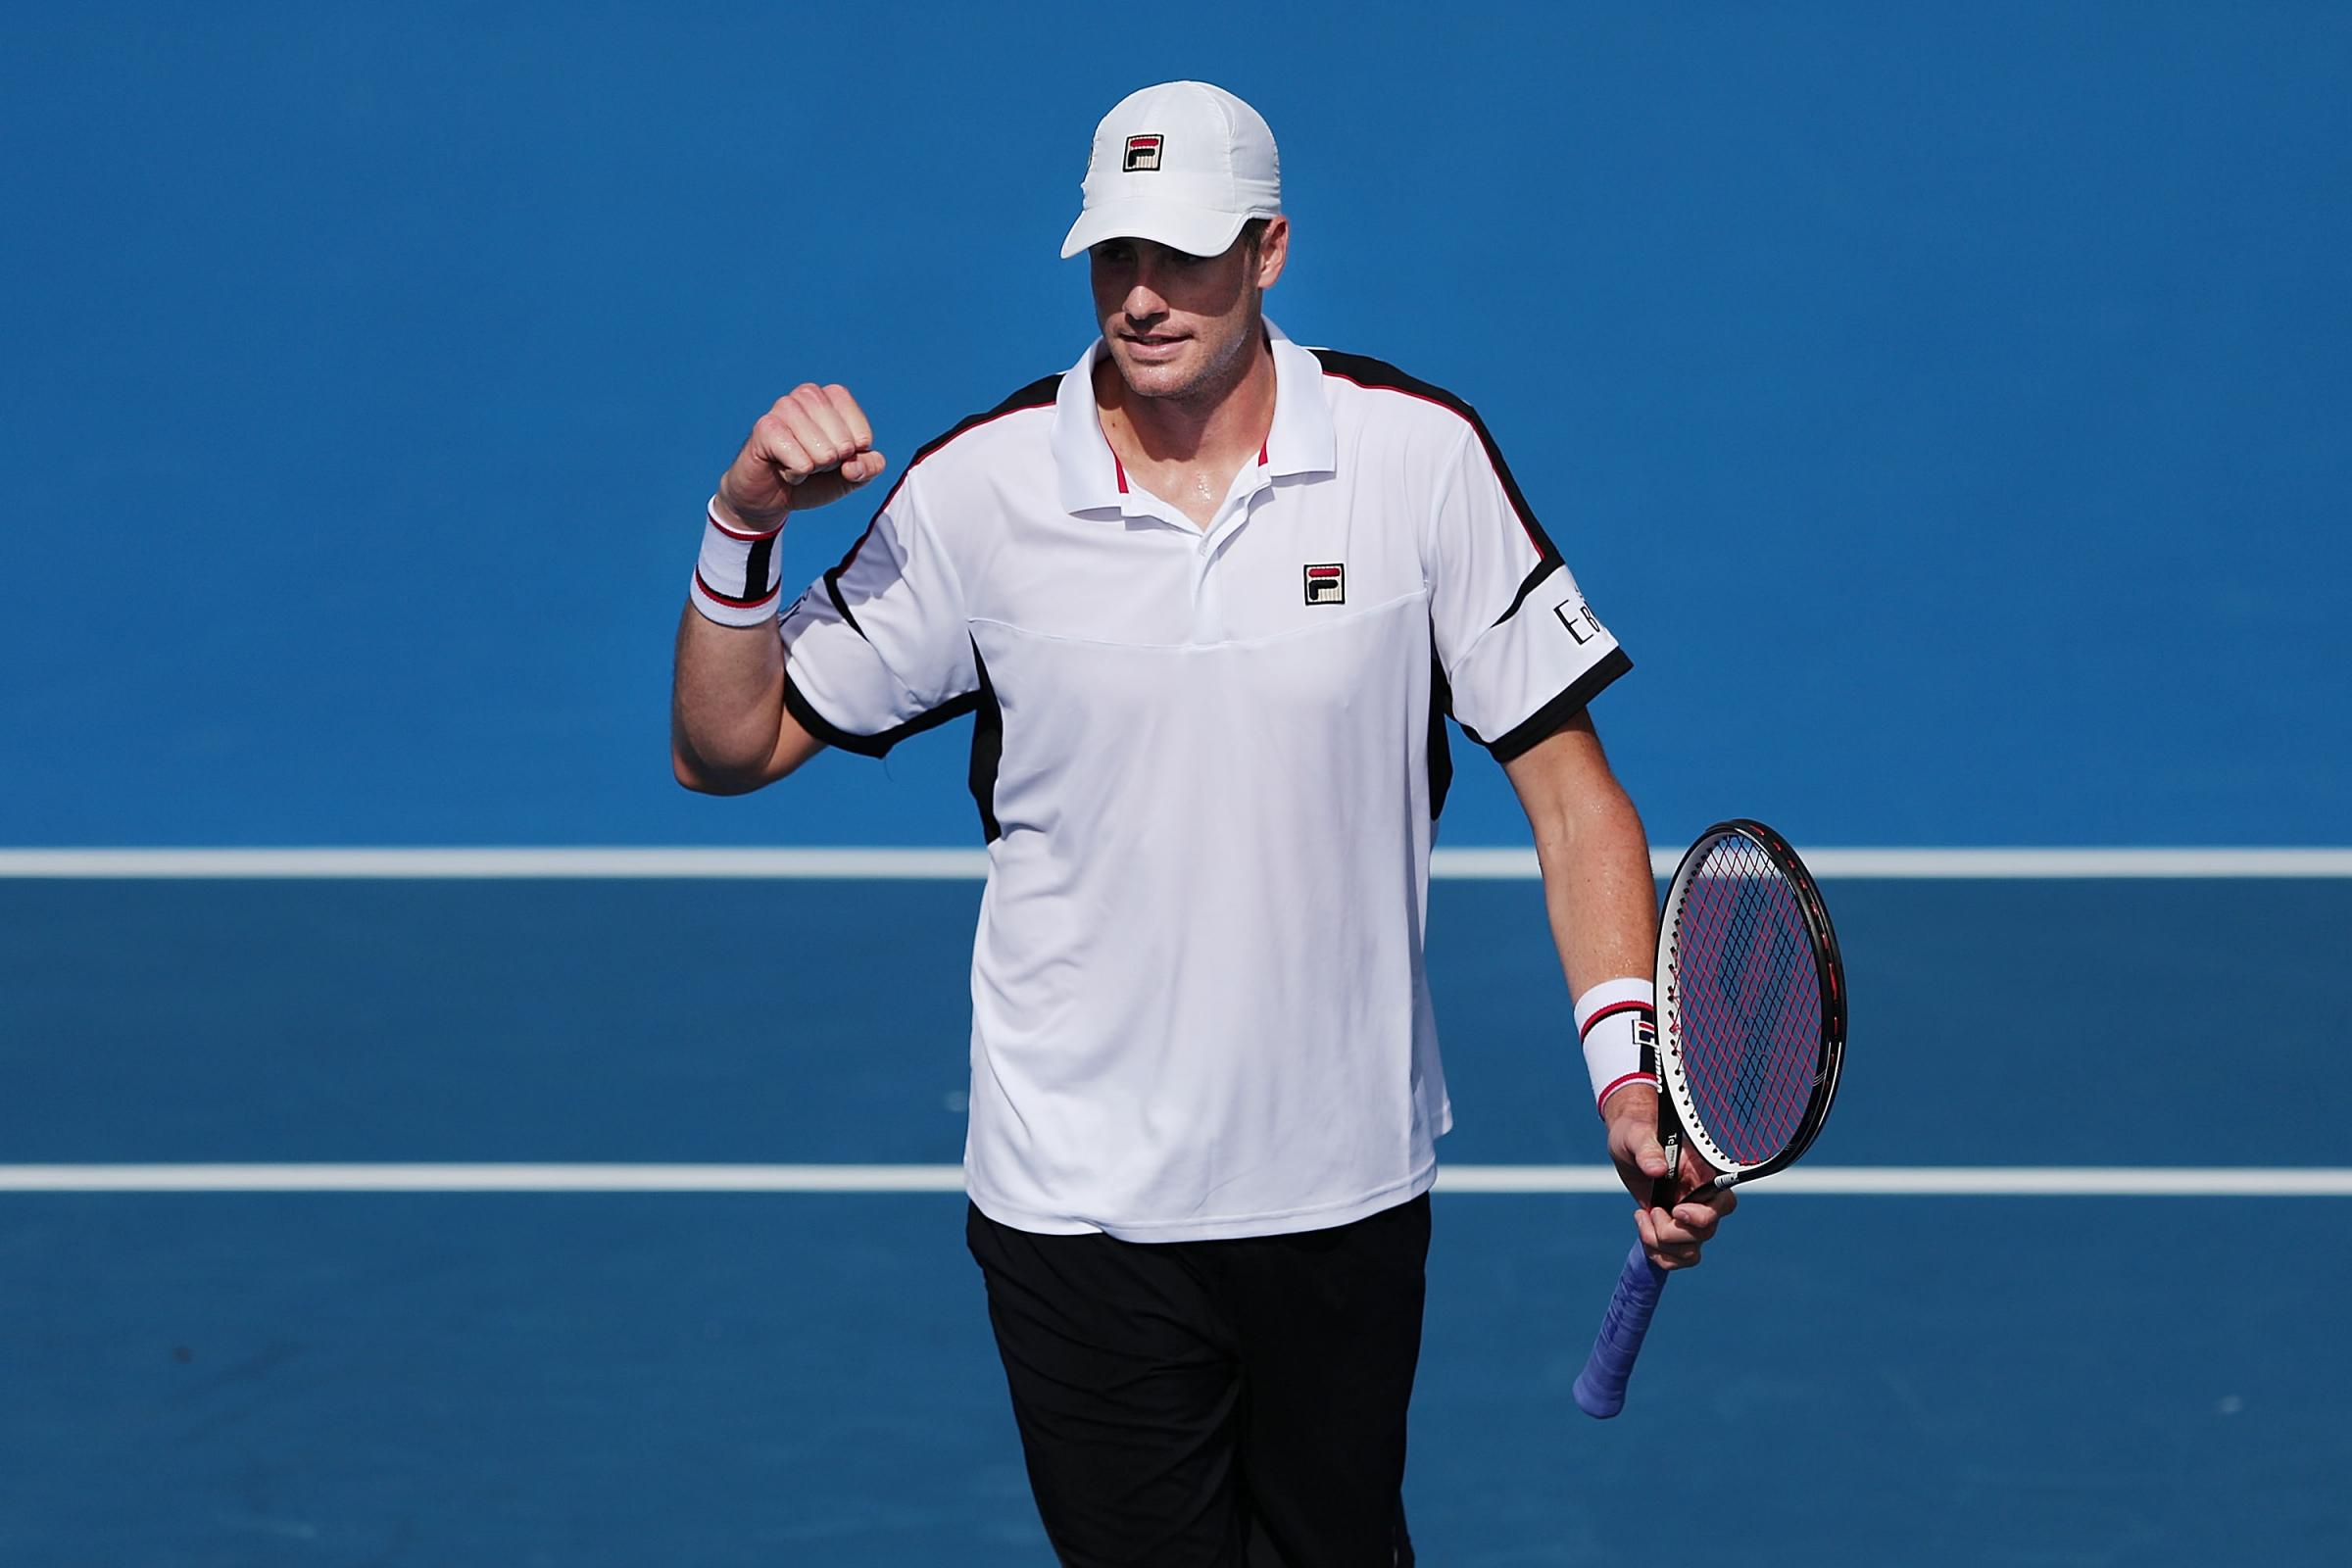 John Isner will make his debut at the Aegon International in Eastbourne next month